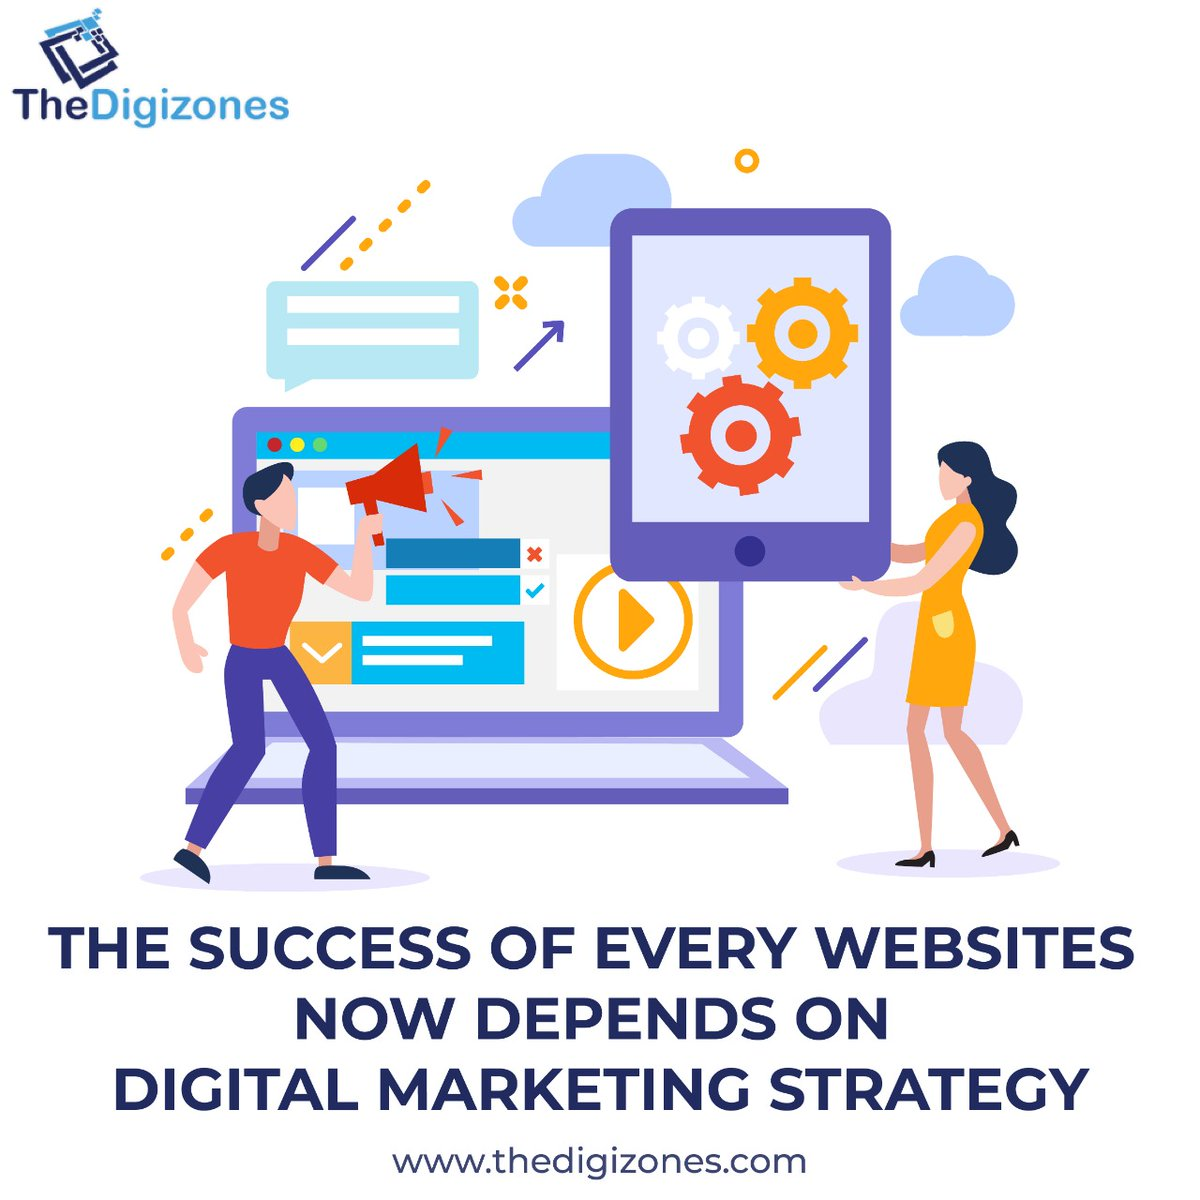 The Success of Every Websites Now Depends on Digital Marketing Strategy Website:-  Email- contact@thedigizones.com Phone no.- +1 8084002436   #websitedevelopment #webstagram #websitedesigning #ppc #seo #seoexpert #seoservices  #thedigizones #company #seo